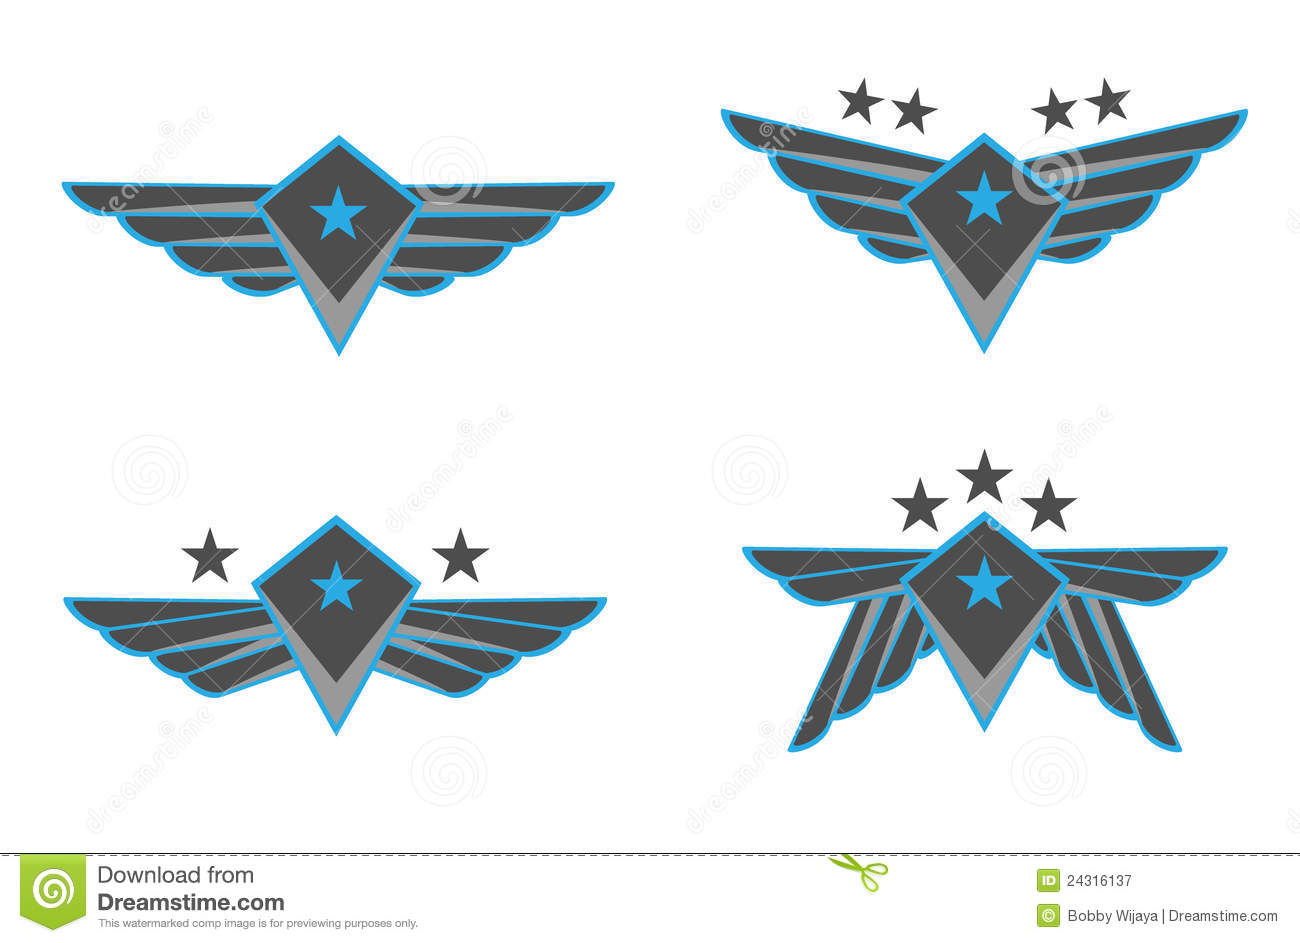 Royalty Free Stock Photography Wings Vector Illustration Image24316137